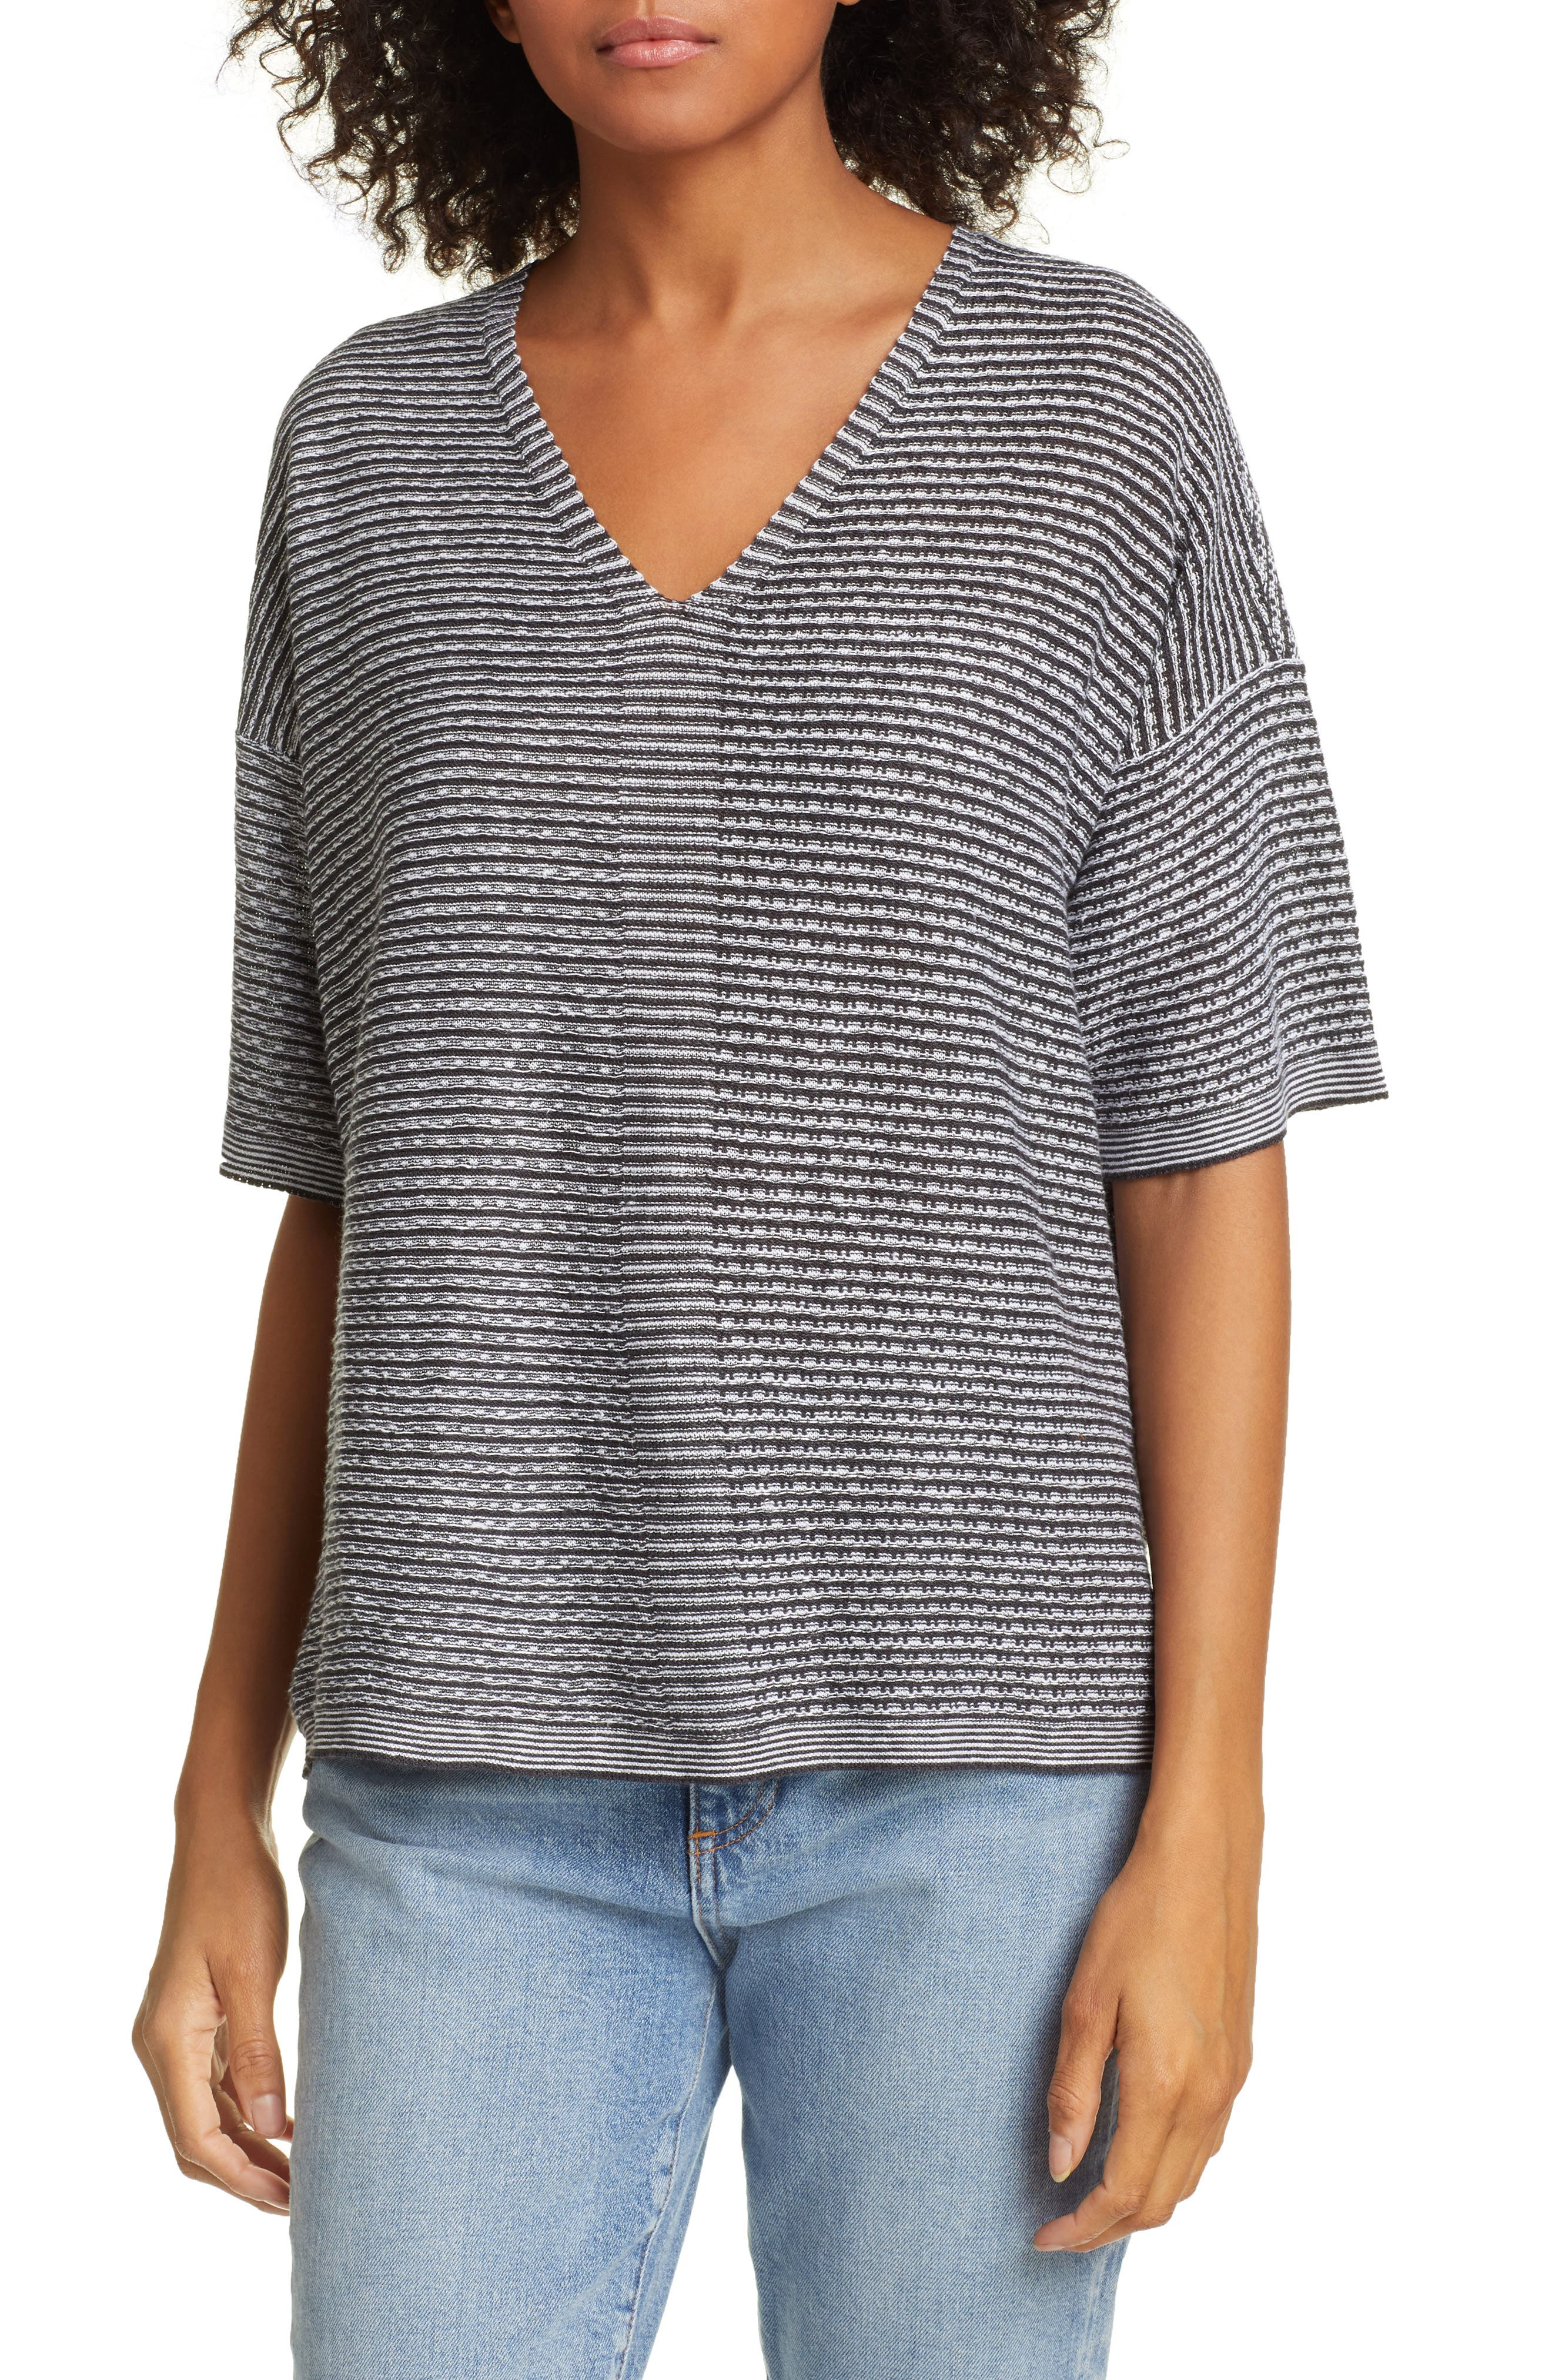 EILEEN FISHER, Organic Linen Jacquard Sweater, Main thumbnail 1, color, IVORY